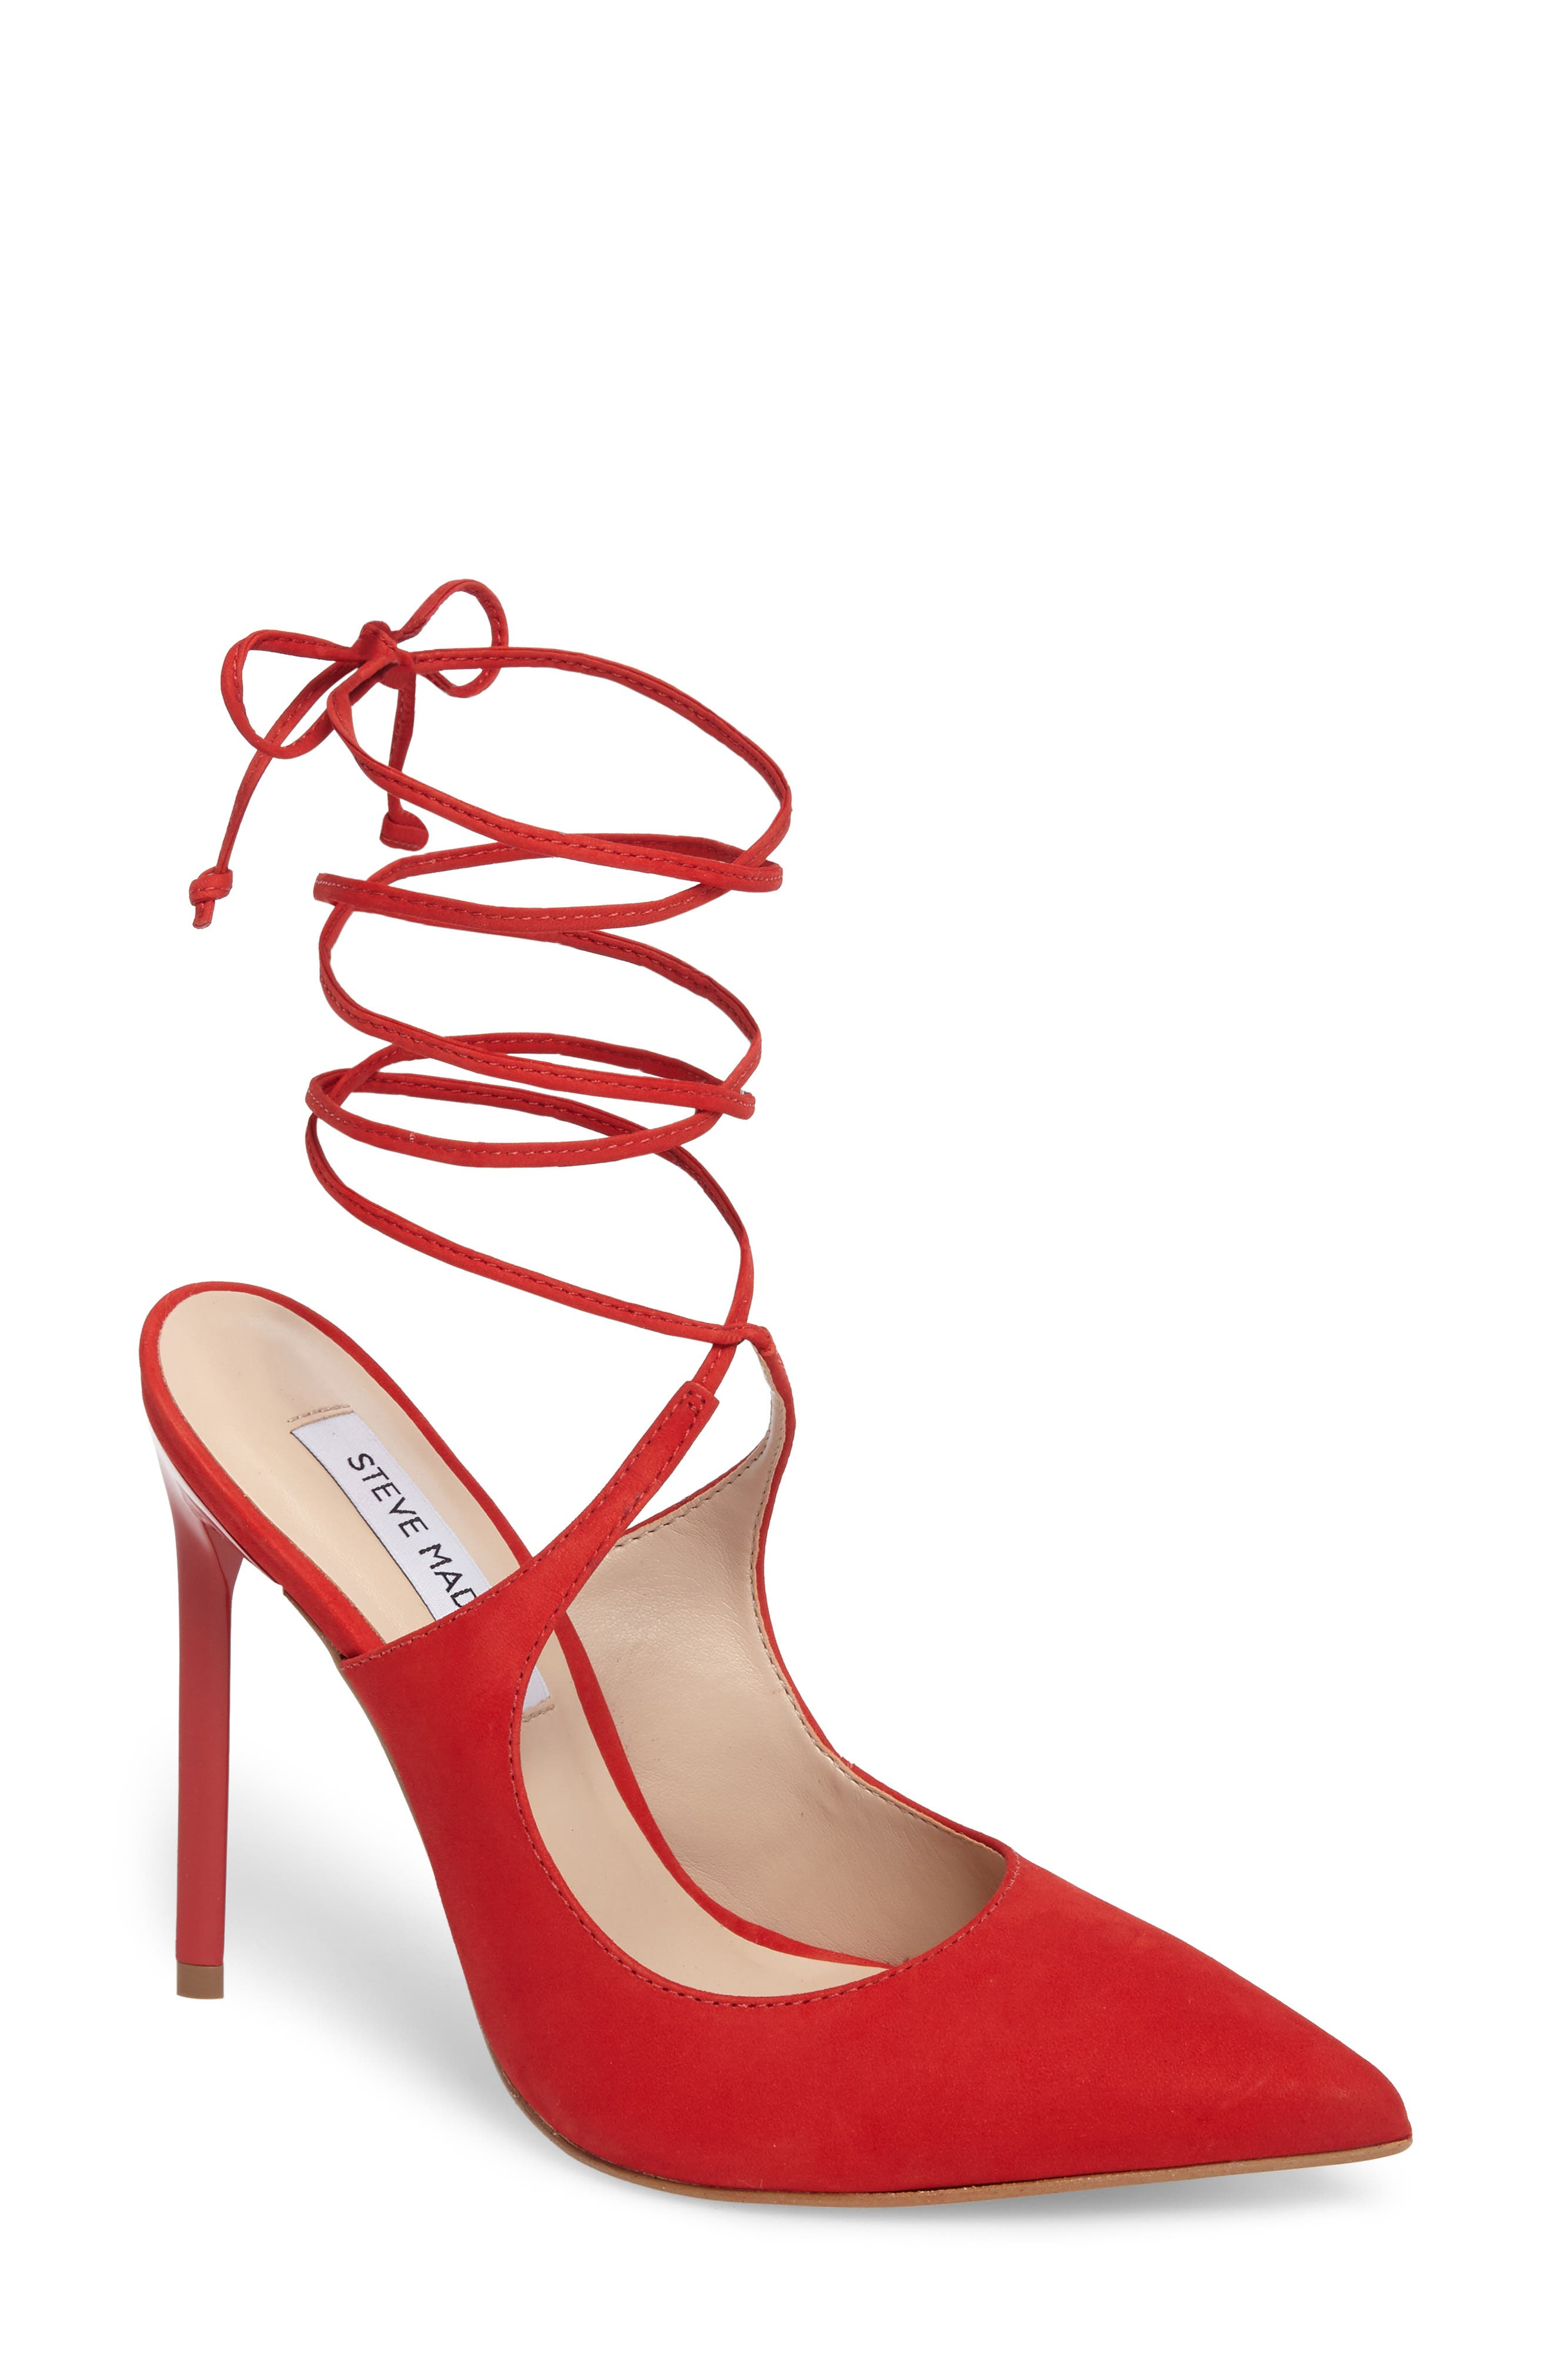 Raven Ankle Wrap Pump,                         Main,                         color, Red Nubuck Leather